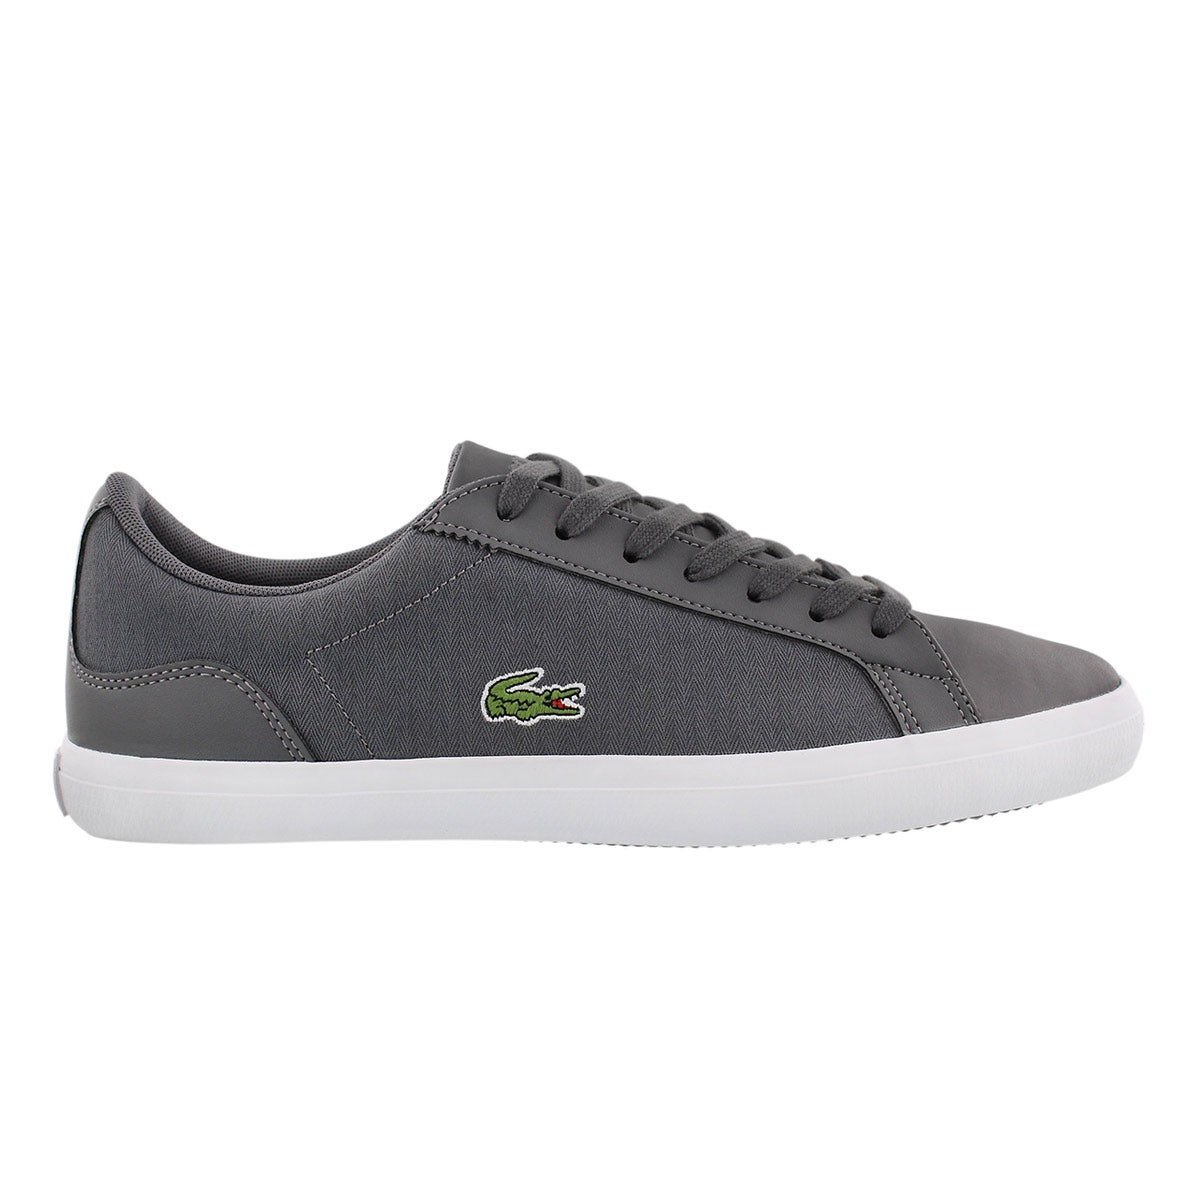 Mns Lerond 316 dk grey lace up sneaker